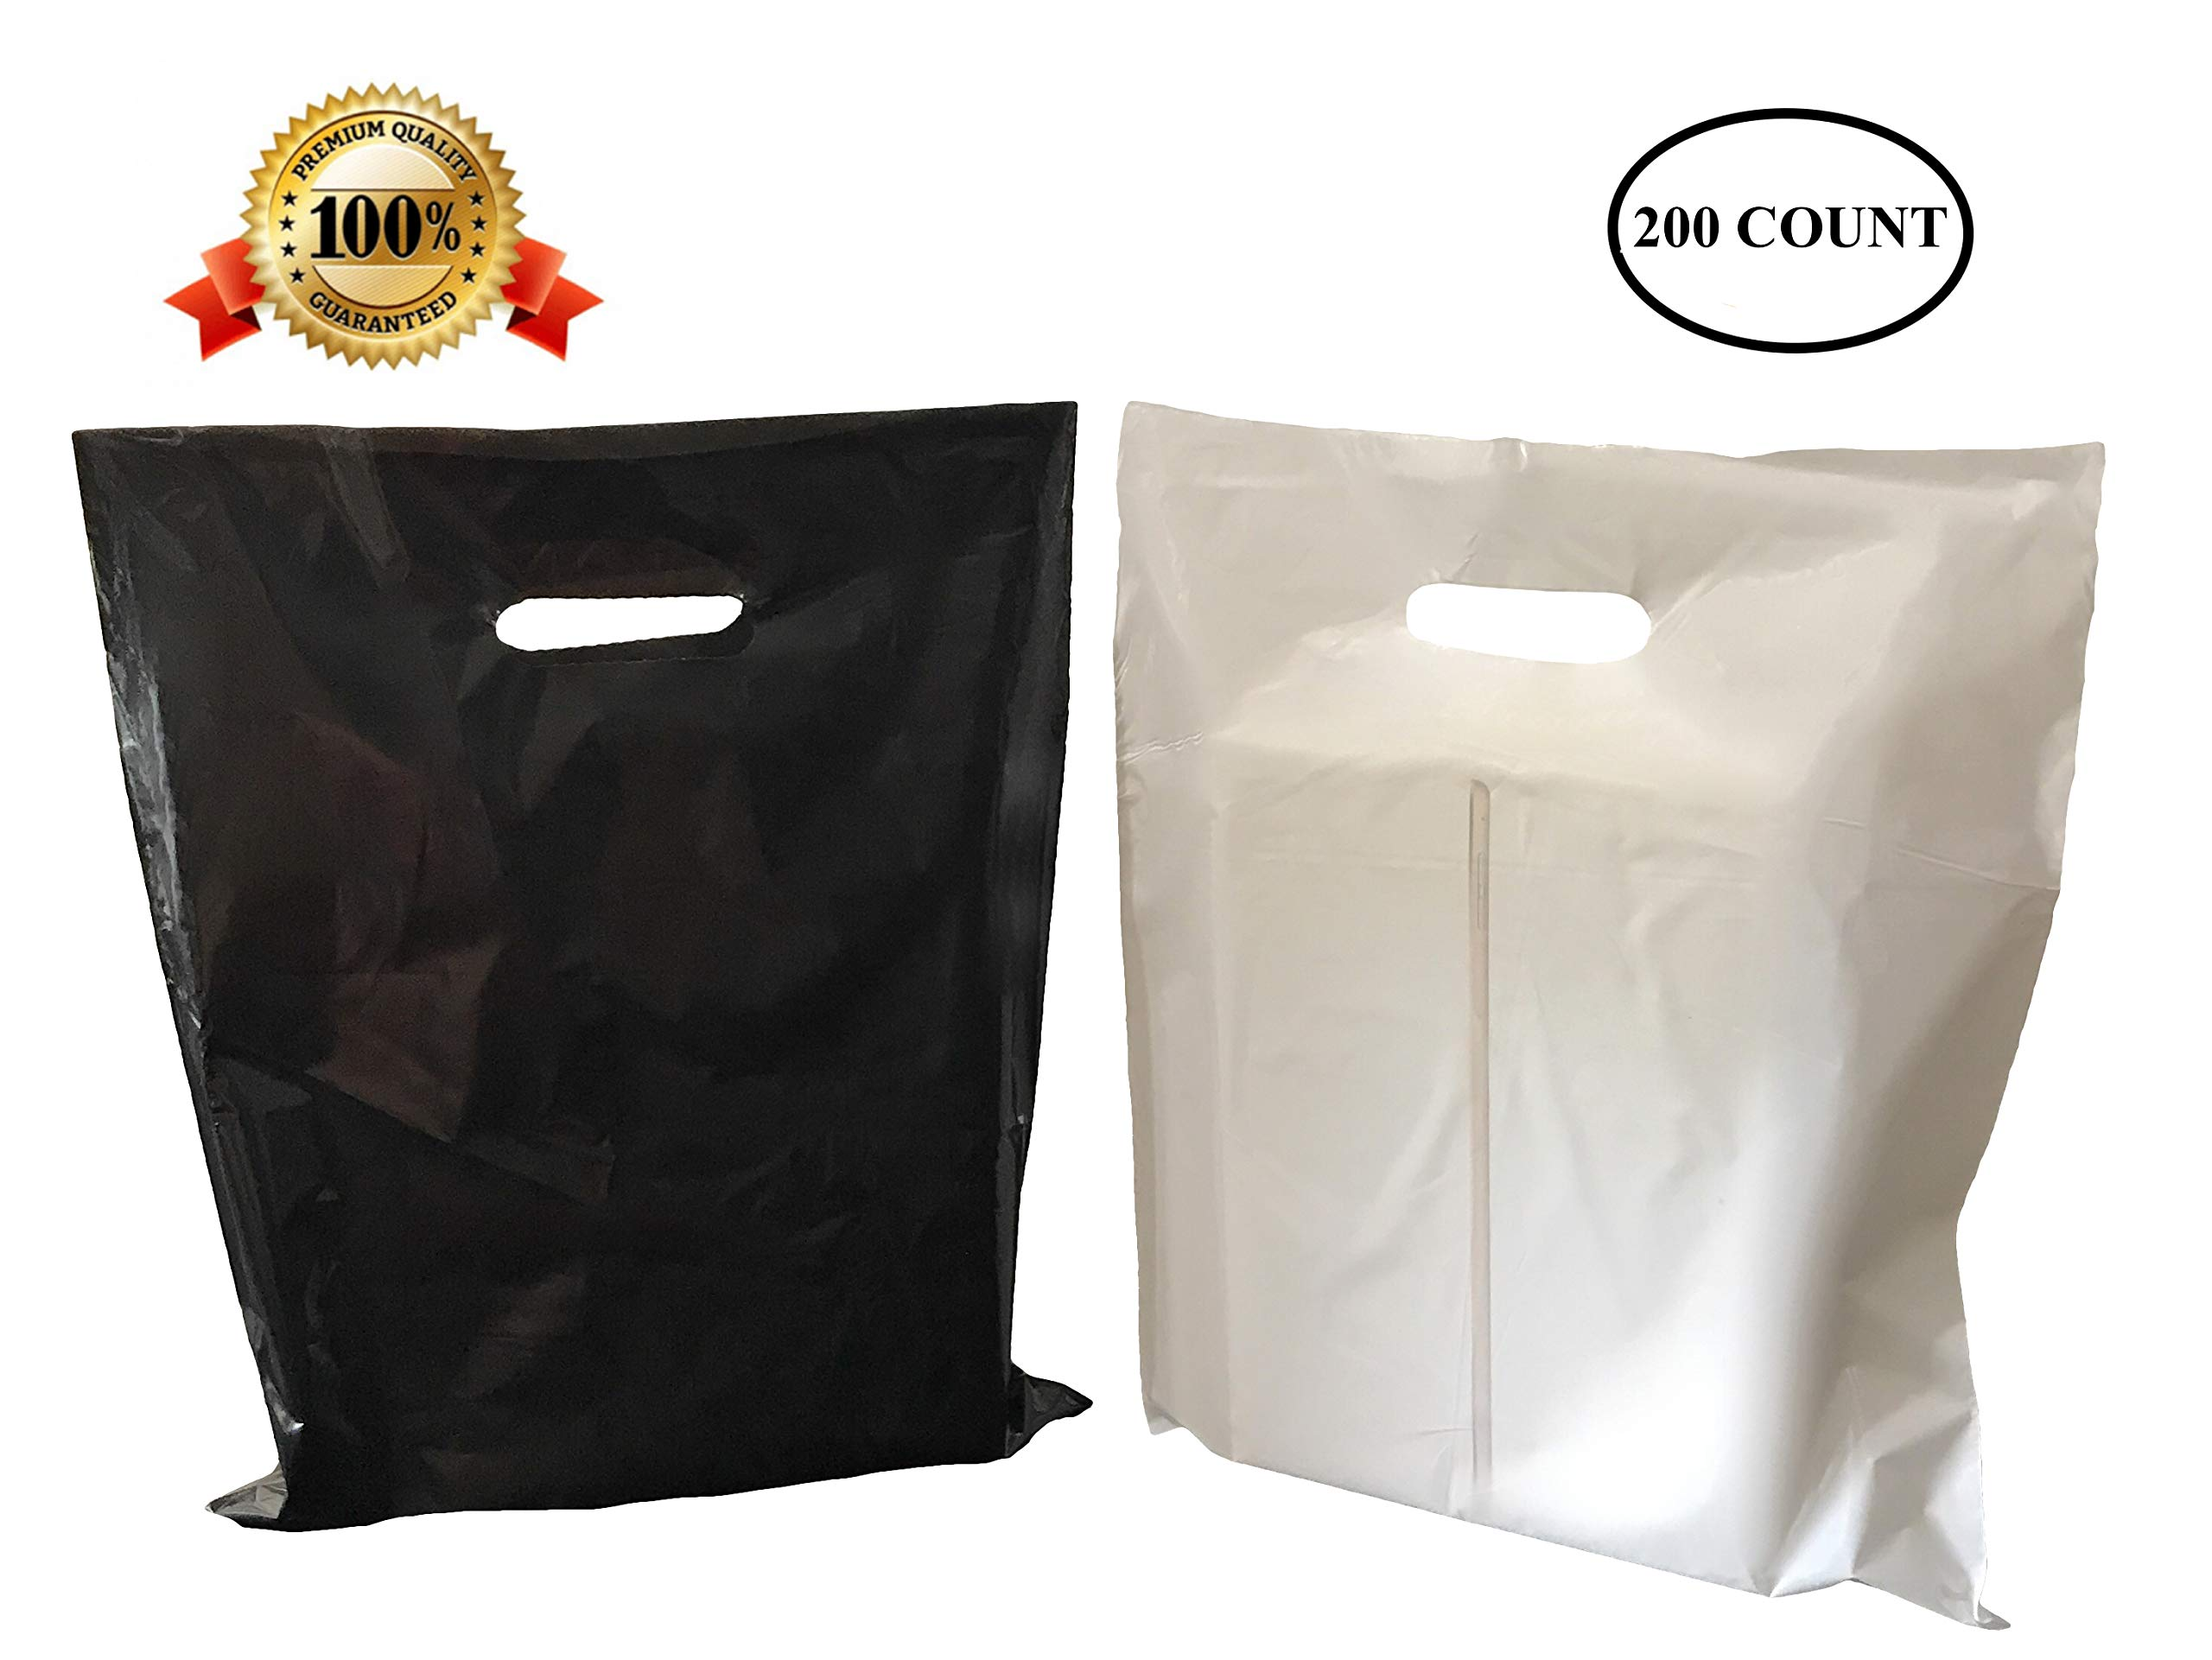 200 12'' X 15'' Medium Black and White Merchandise Bags, Comfortable Die Cut Handles, Premium, Strong, Durable, Tear-Resistant Glossy Bags, Perfect for Retail, Boutiques, or Any Other Events